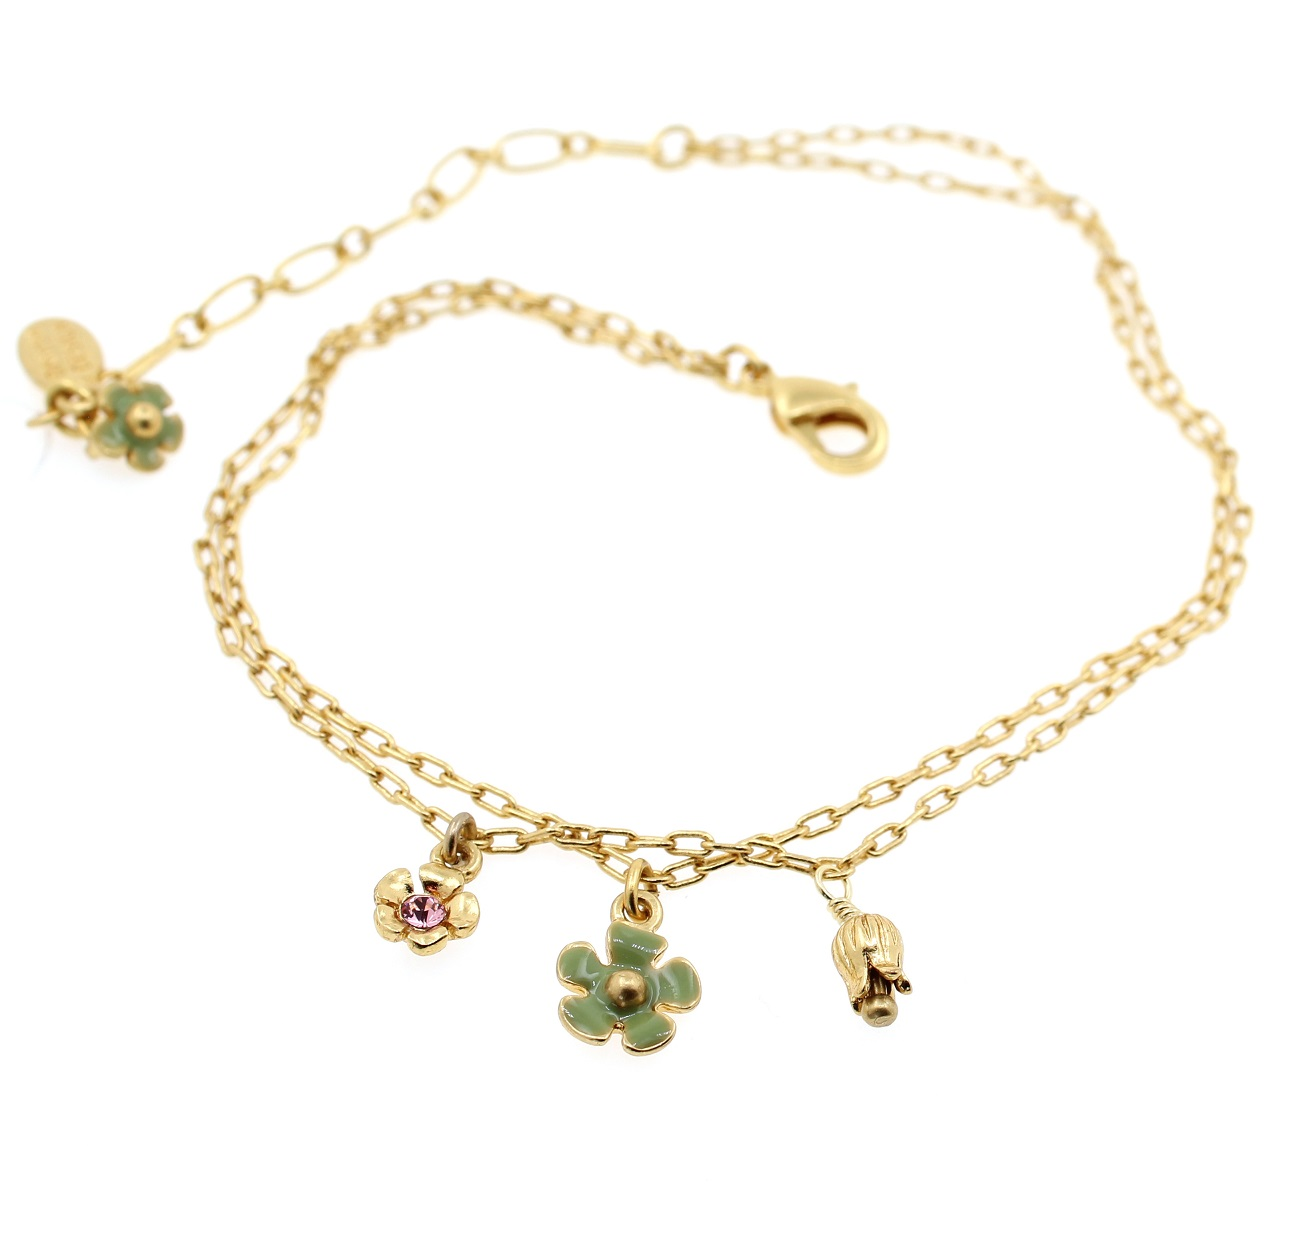 PILGRIM - Bell Flower - Ankle Chain - Gold/Green & Pink BNWT